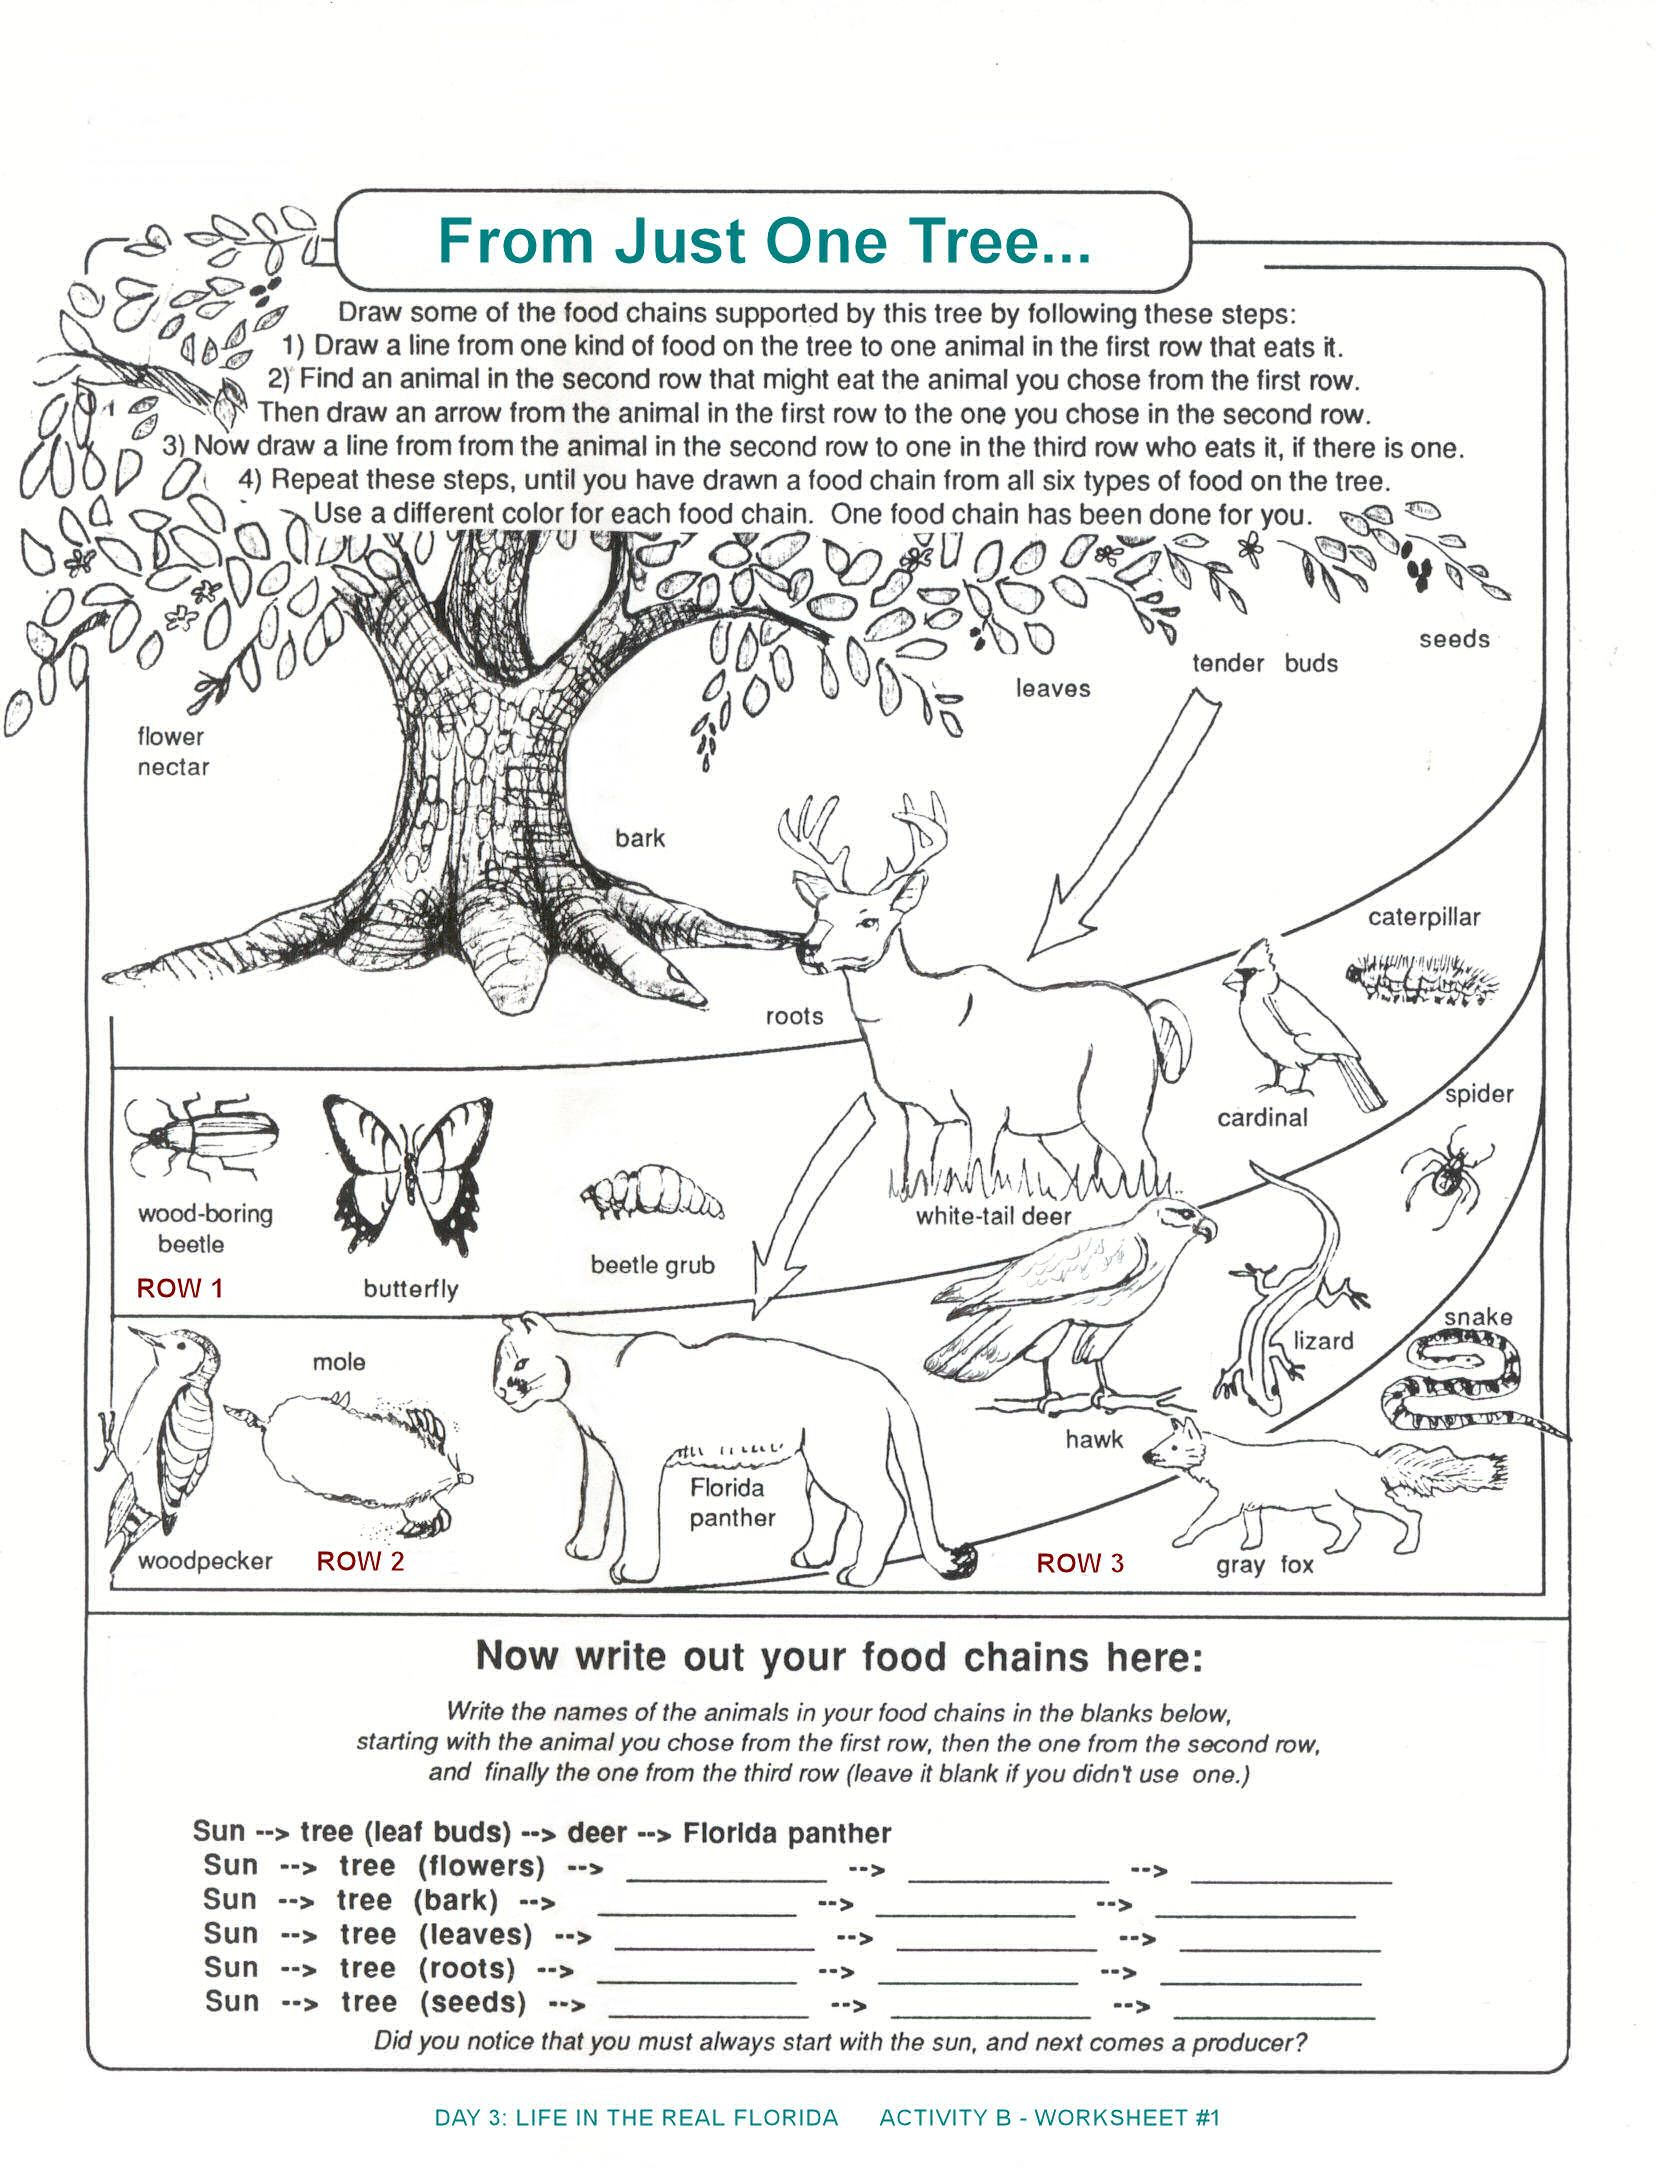 Ecosystem Worksheets For Middle School